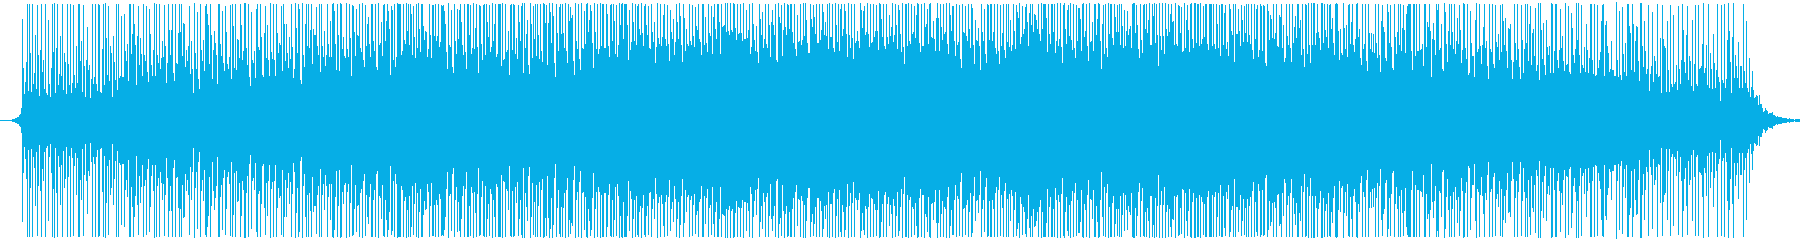 Corporate Music's reproduced waveform